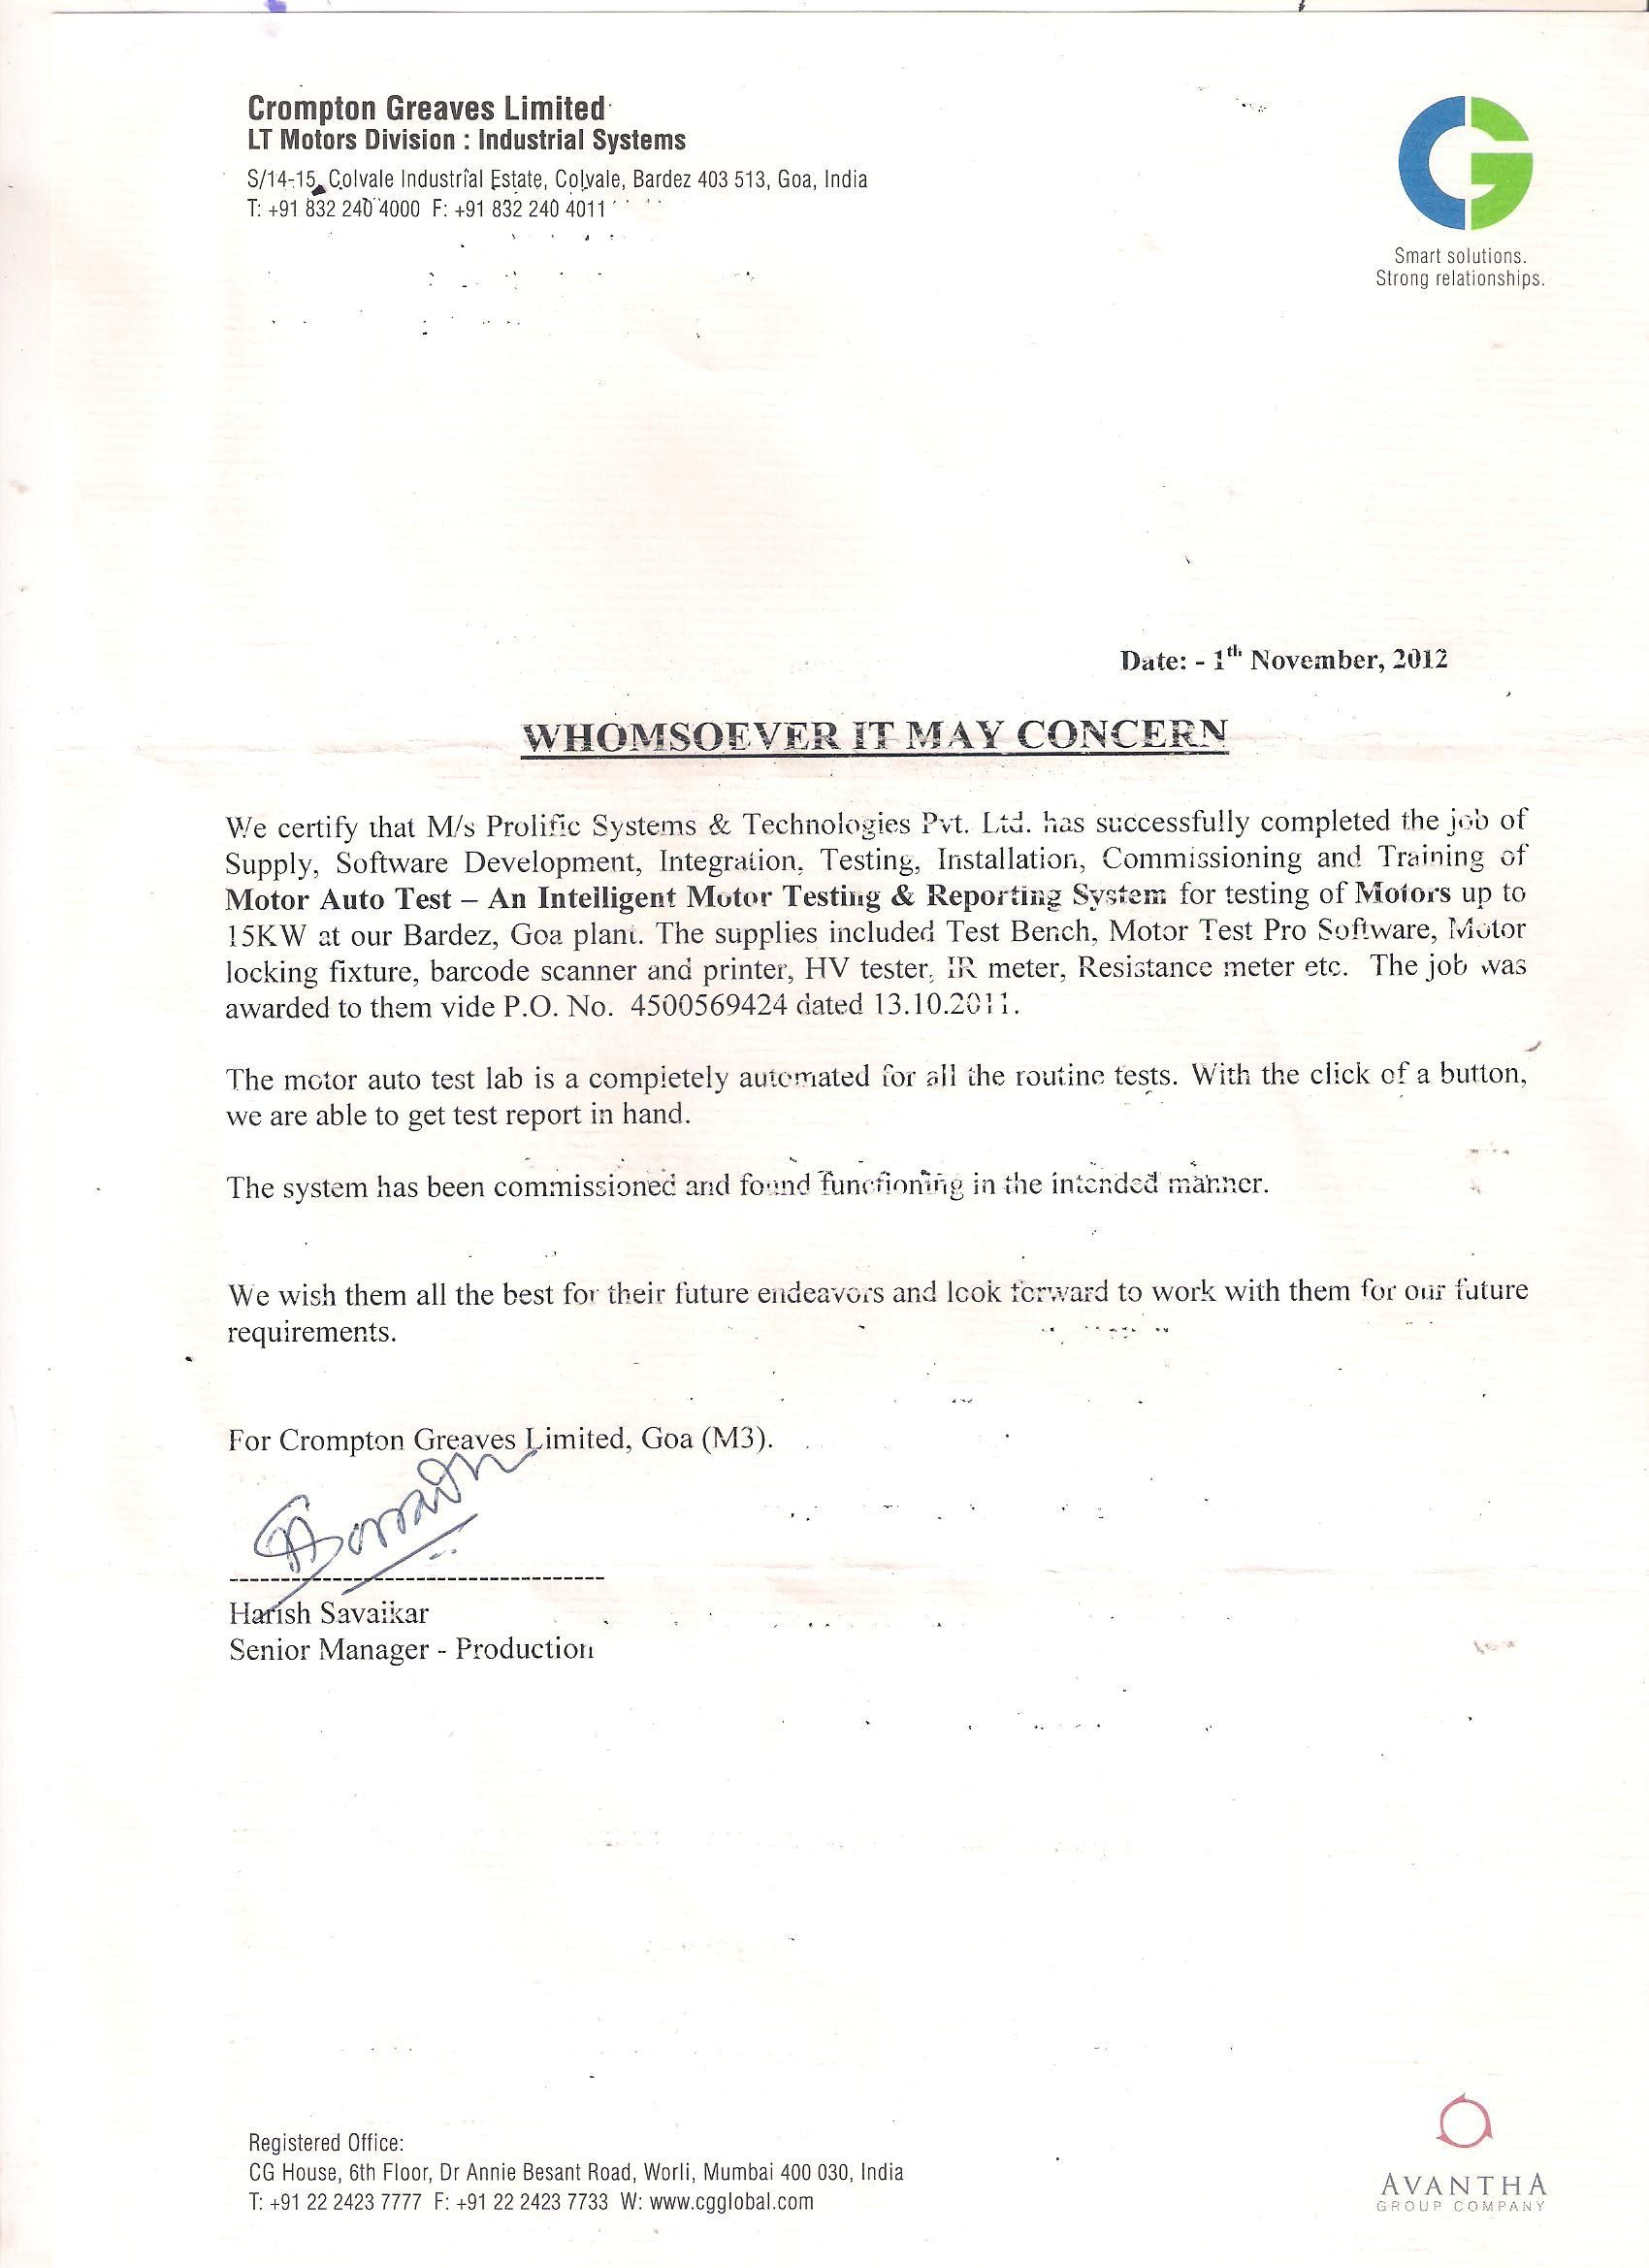 Valid Job Completion Certificate Letter you can download